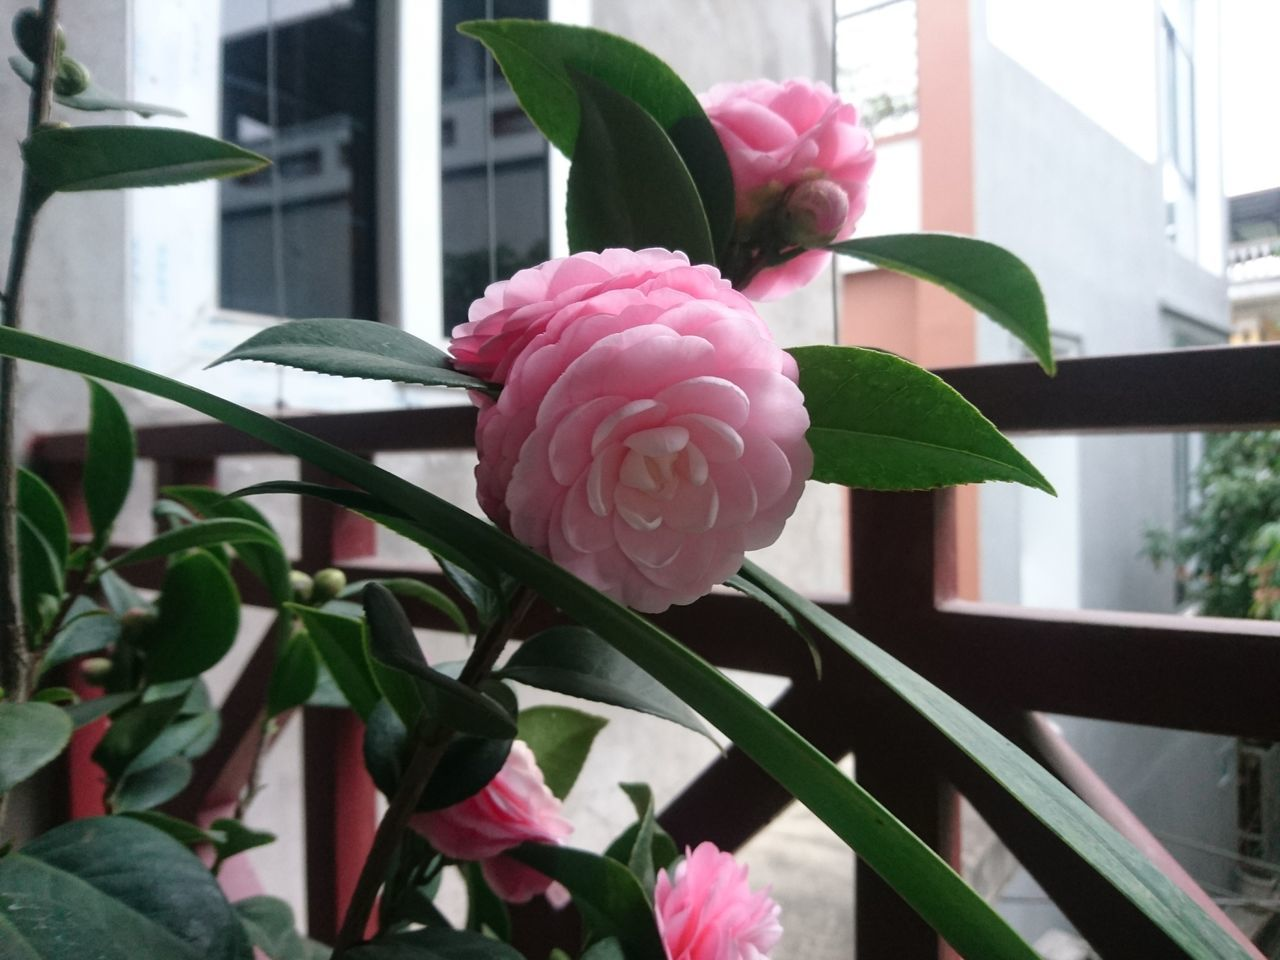 flower, petal, growth, fragility, leaf, freshness, flower head, plant, nature, beauty in nature, focus on foreground, pink color, blooming, close-up, built structure, rose - flower, day, architecture, outdoors, building exterior, no people